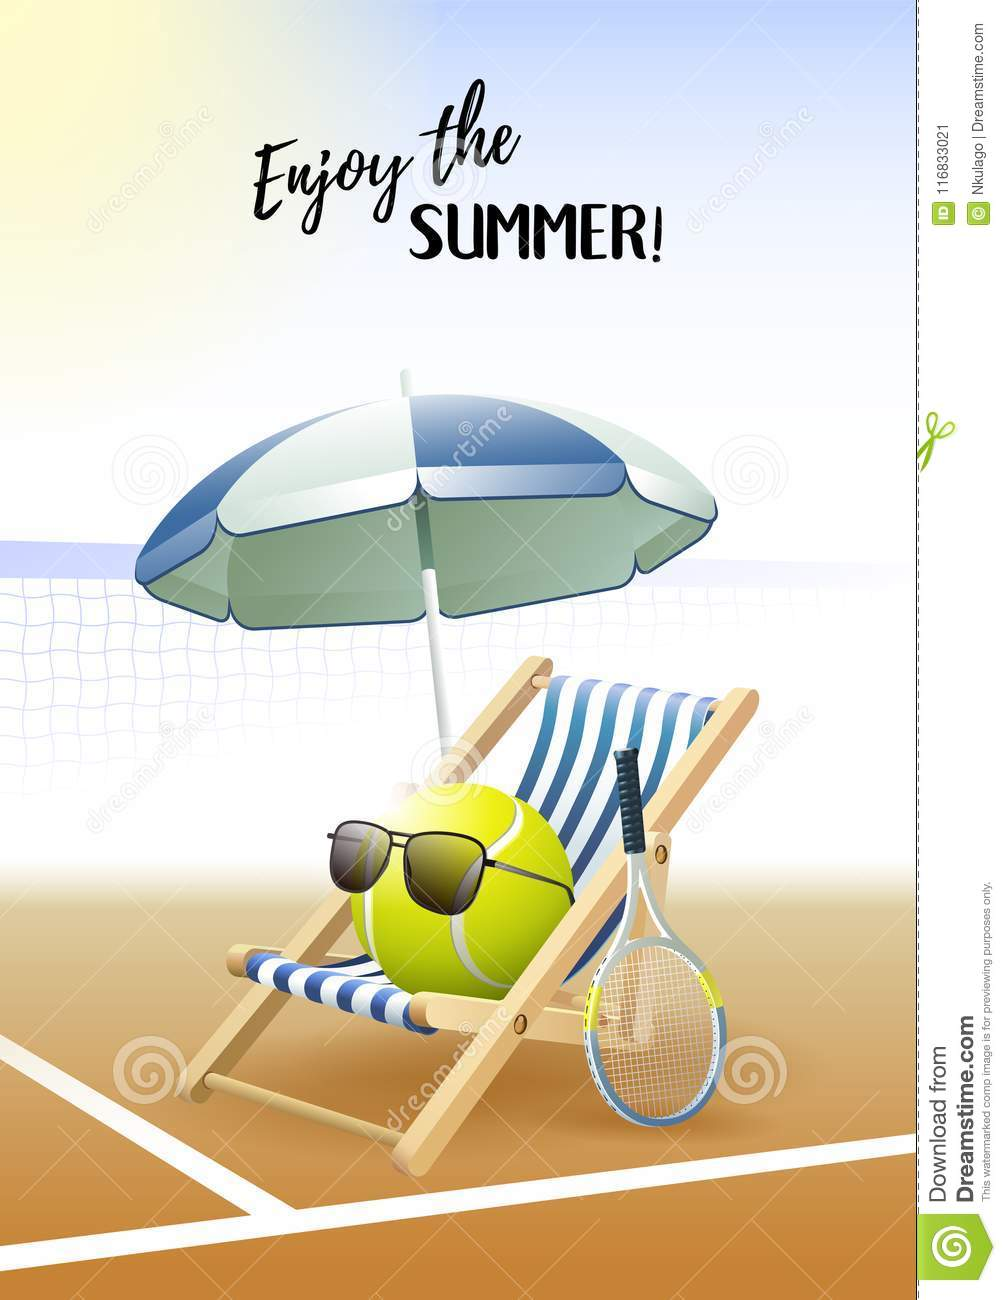 f706746f85b Enjoy The Summer! Sports Card. Tennis Ball With Sunglasses